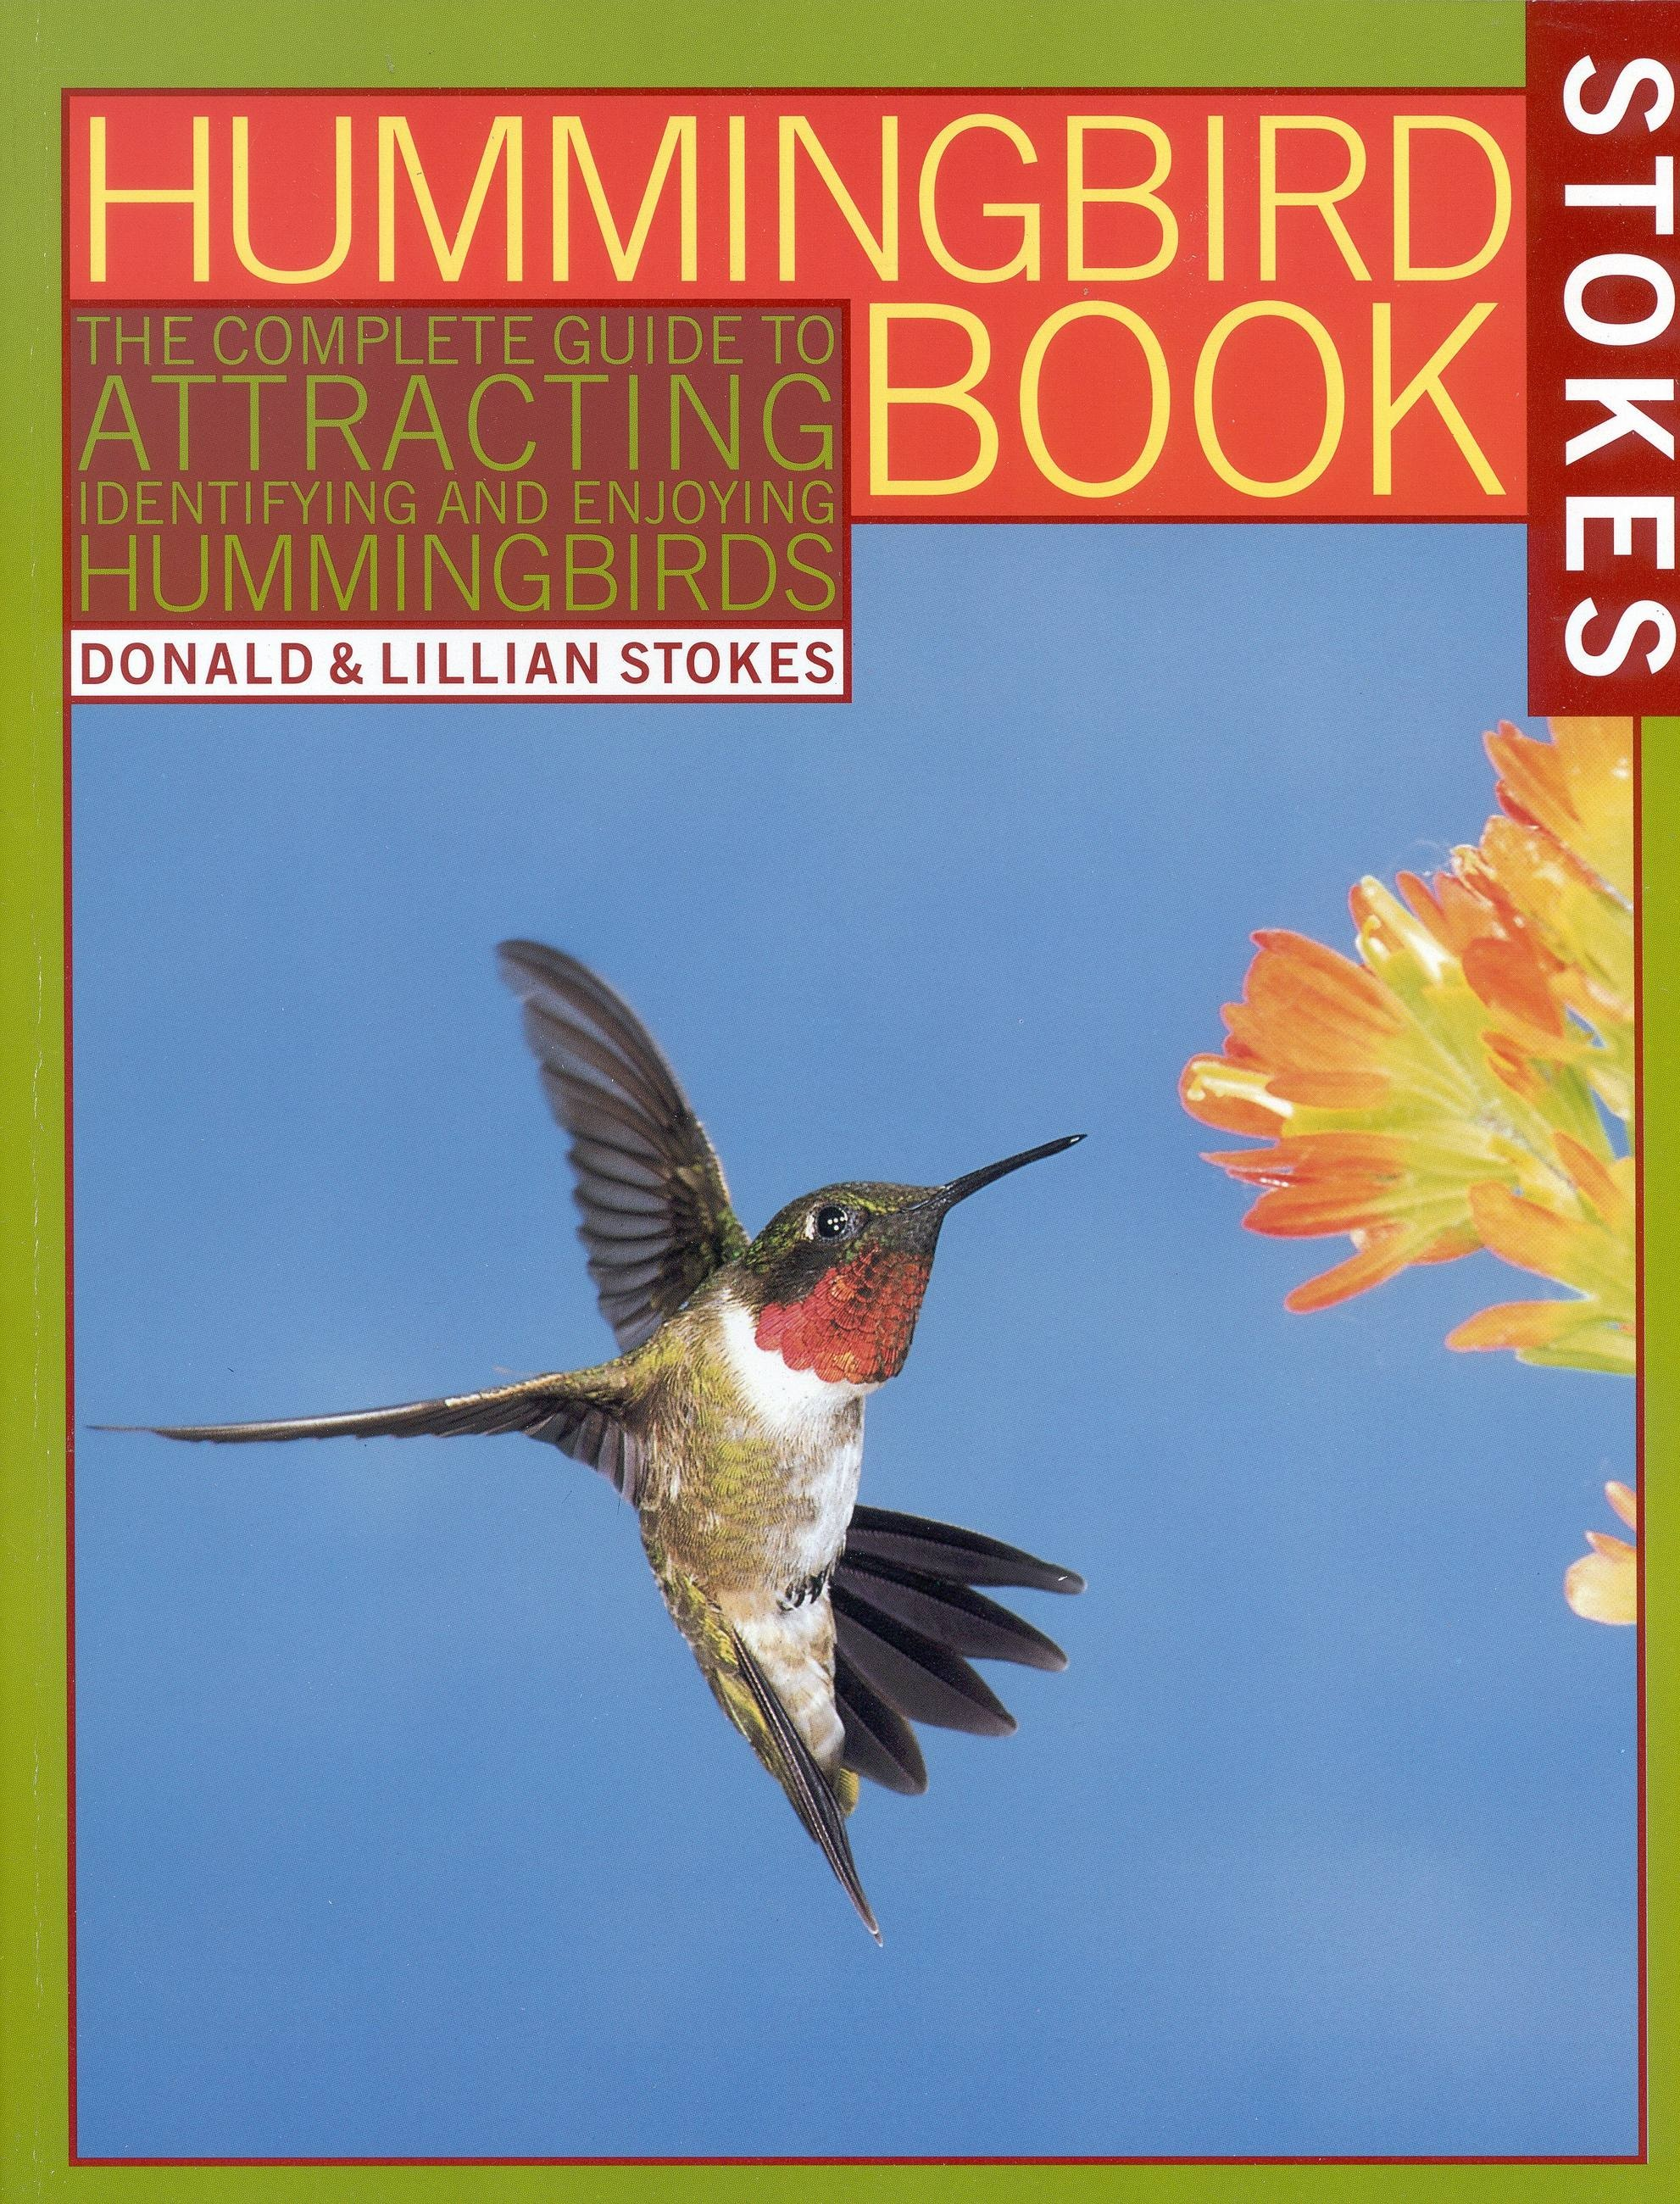 Hummingbird Book, The